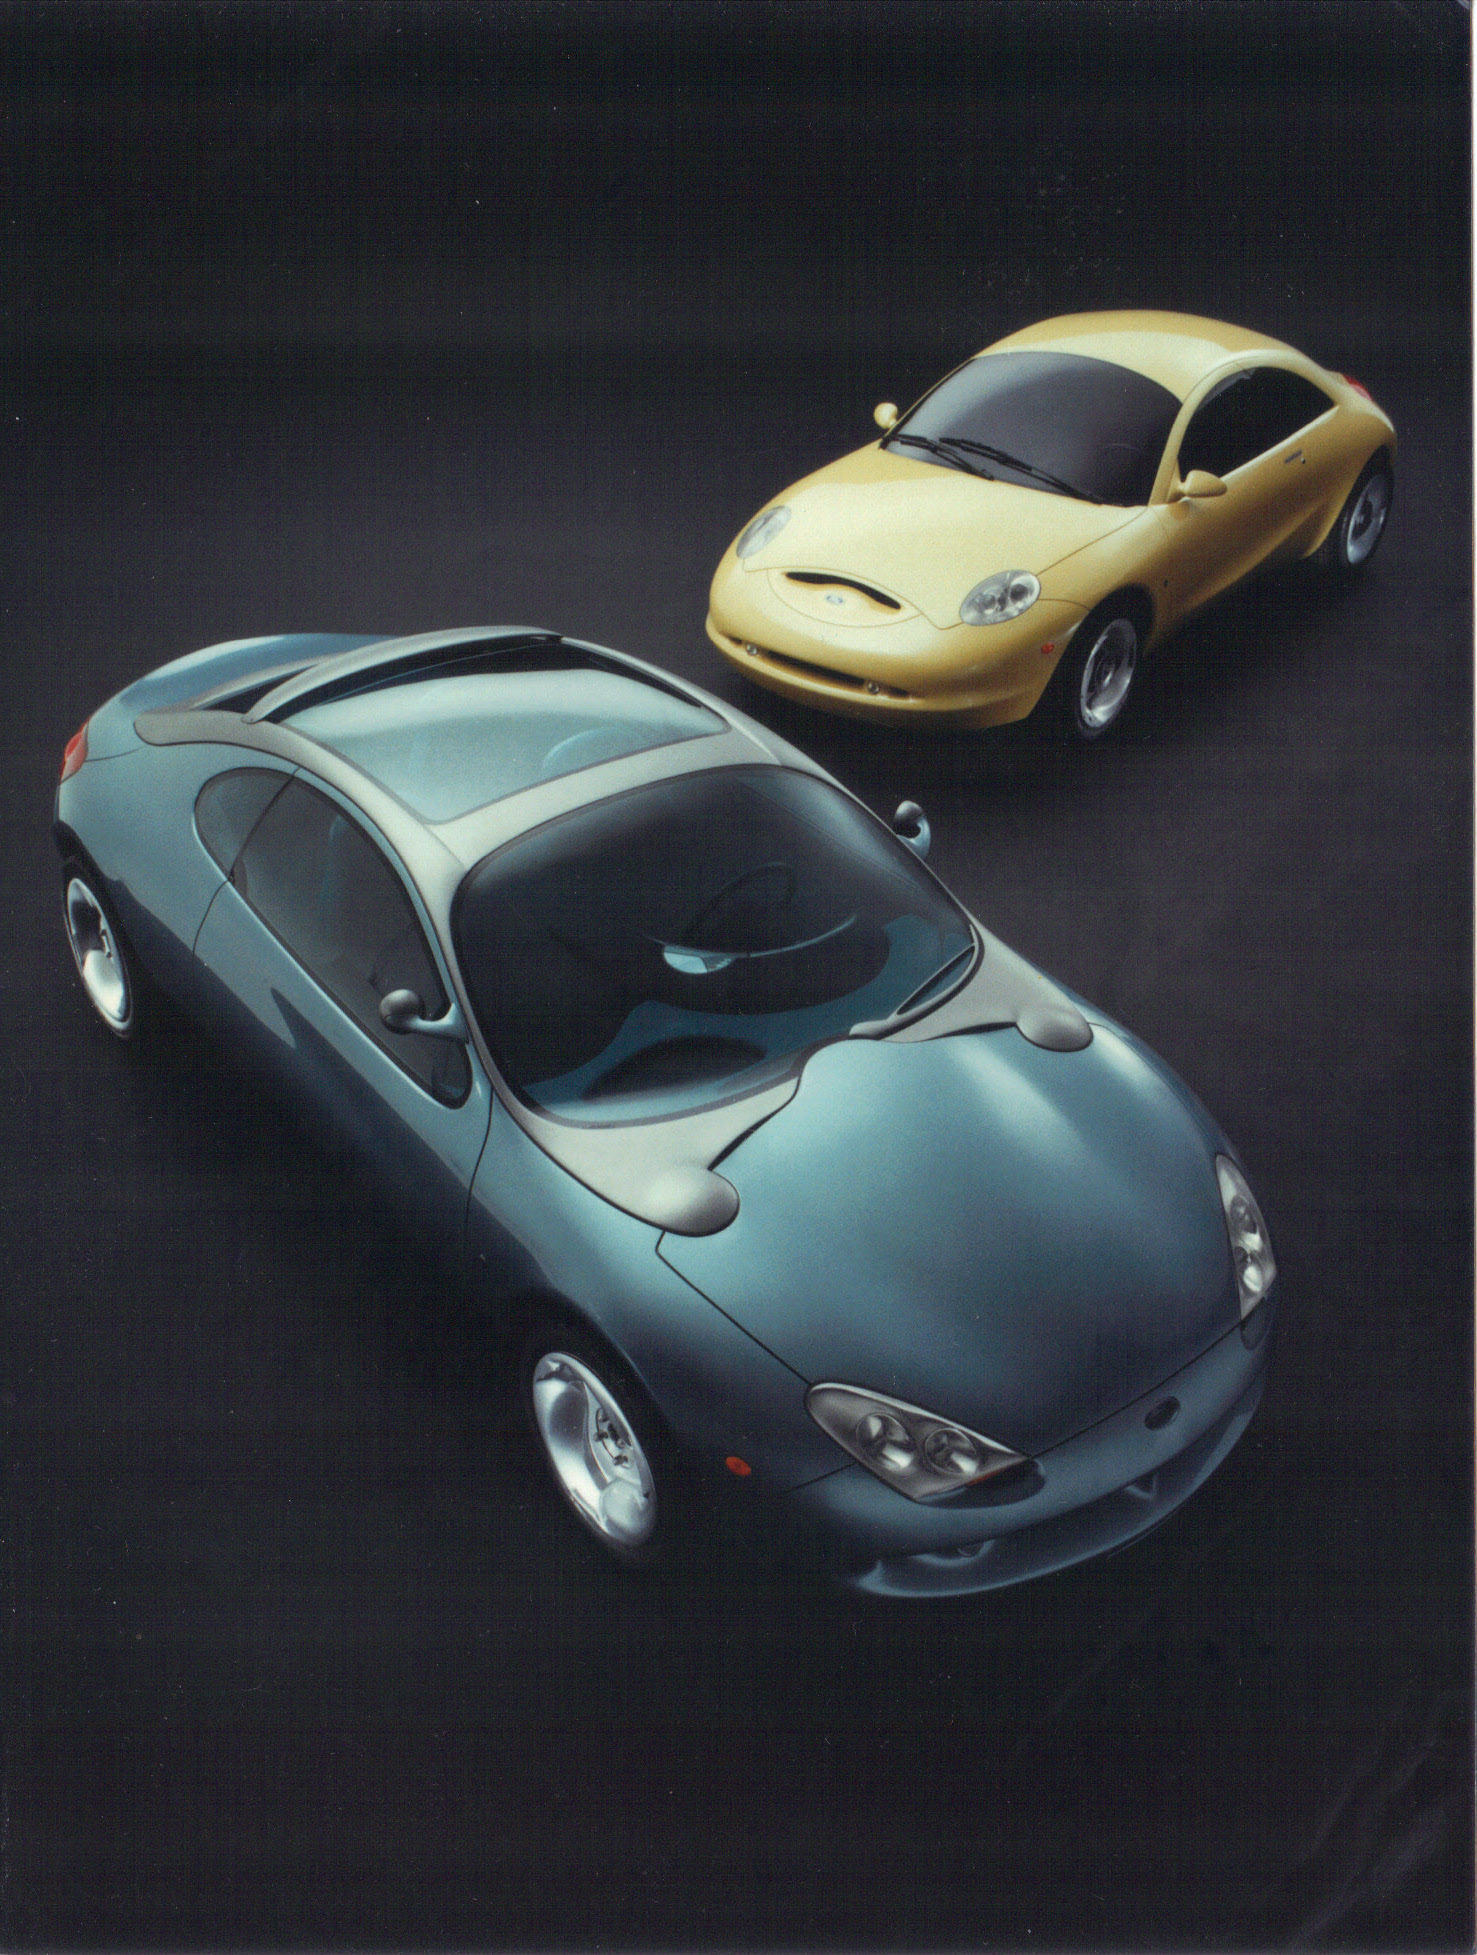 1994 ford ghia vivace concept car with arioso